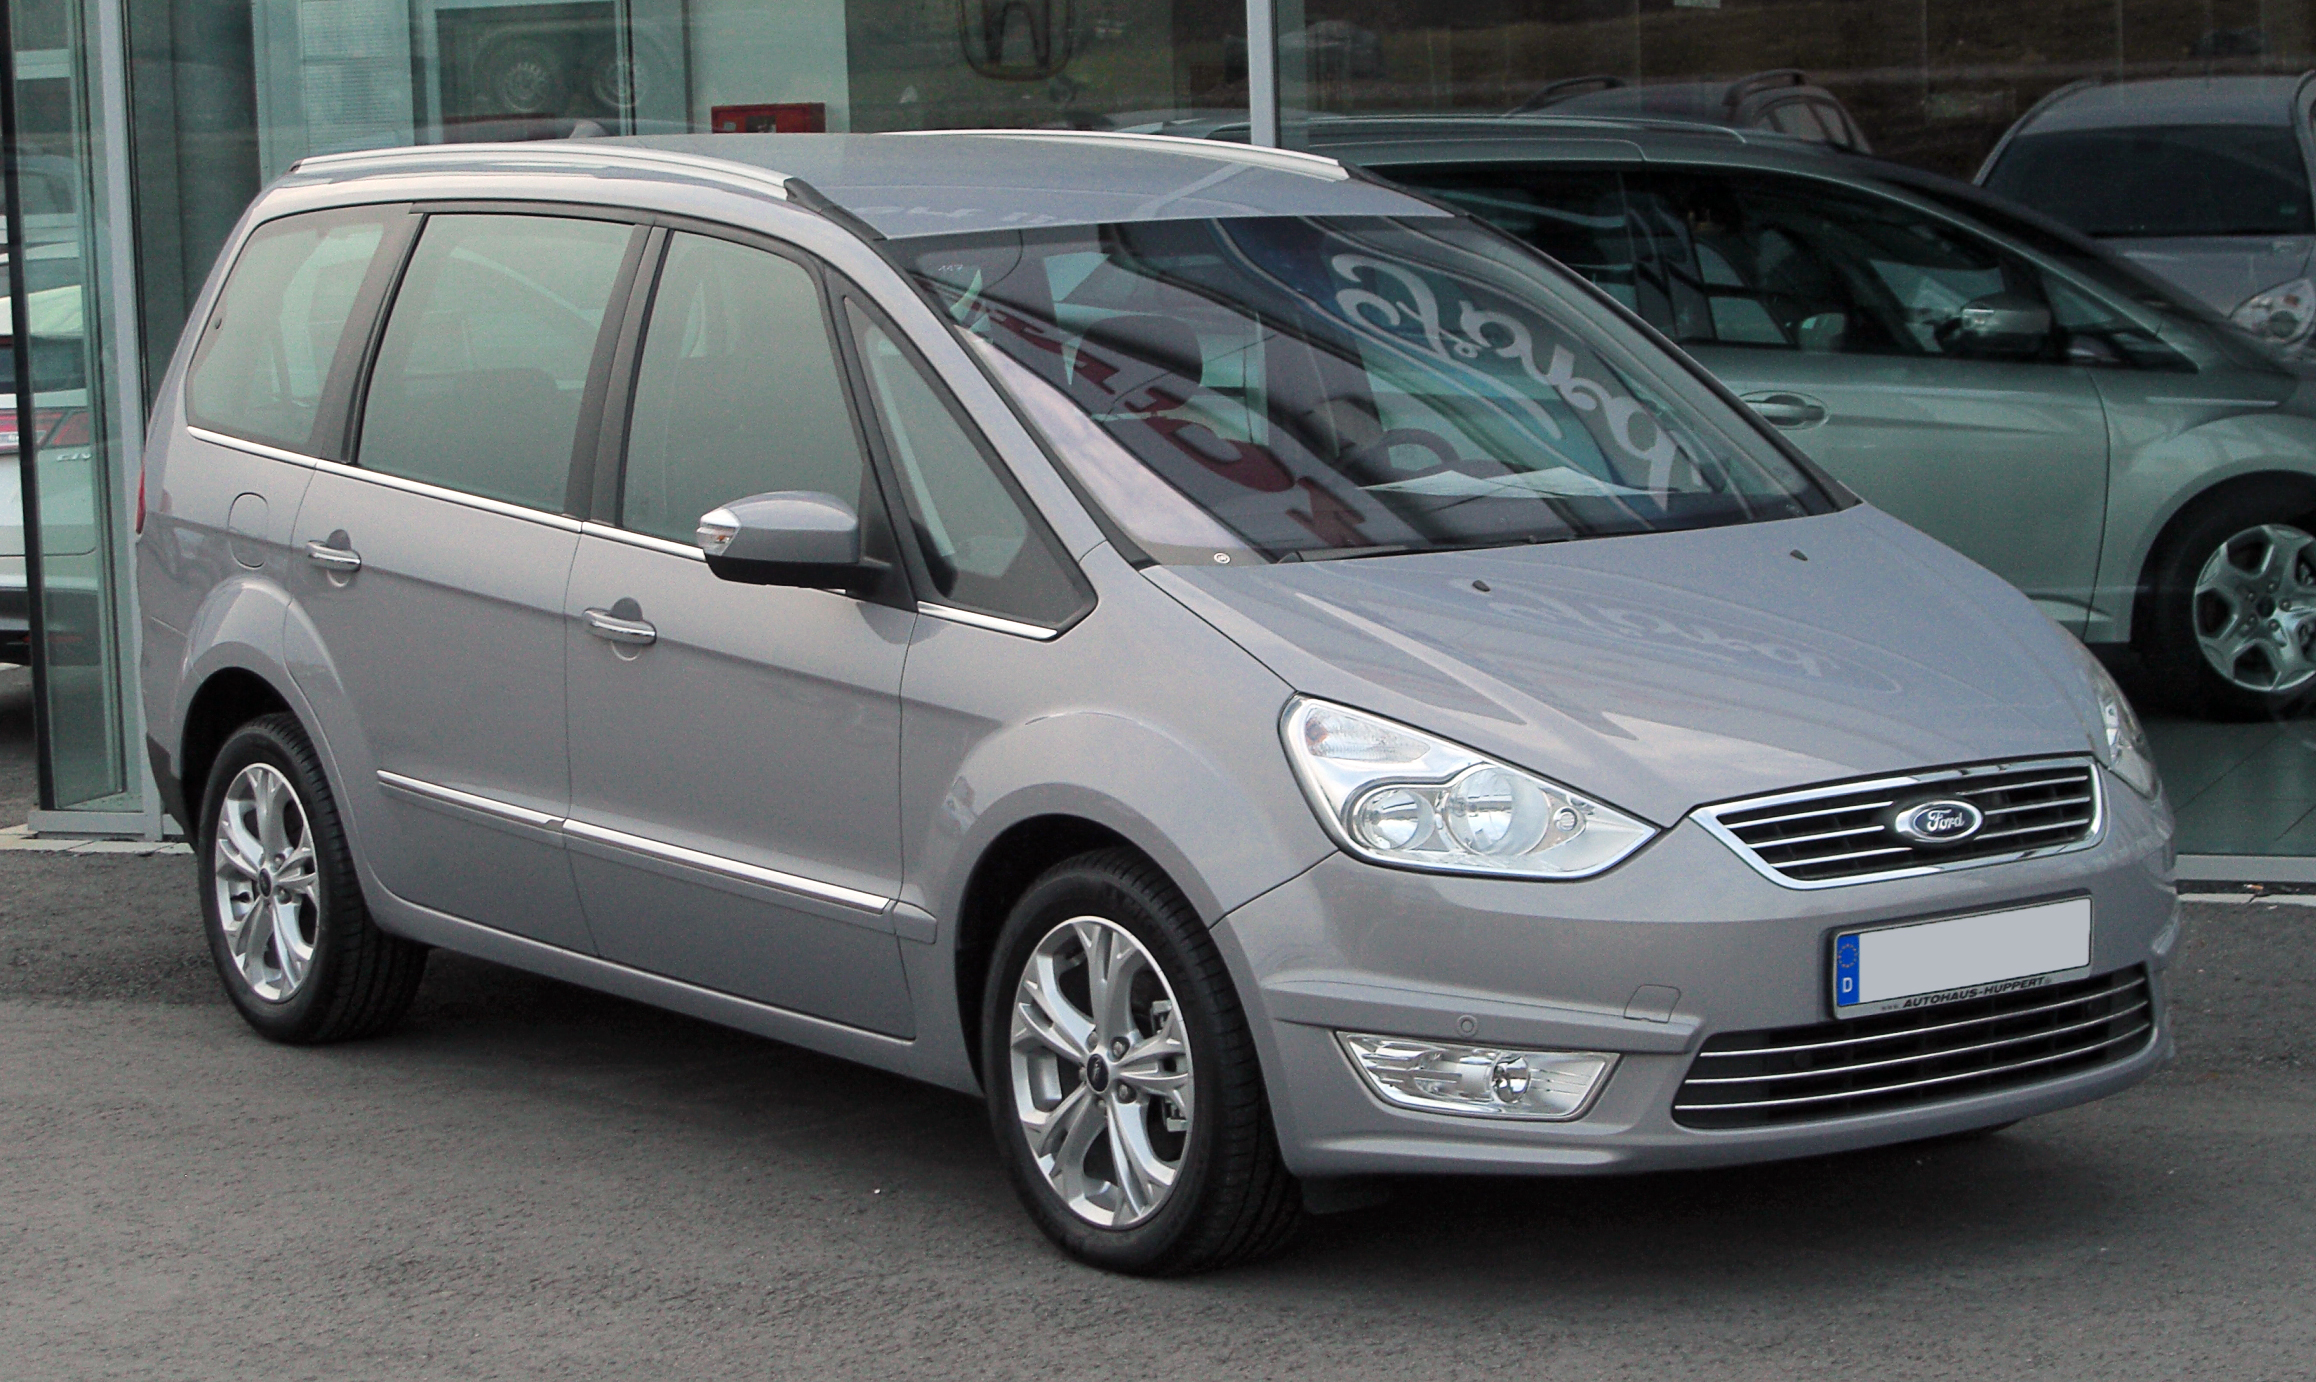 Ford Galaxy 2.0 2010 photo - 9